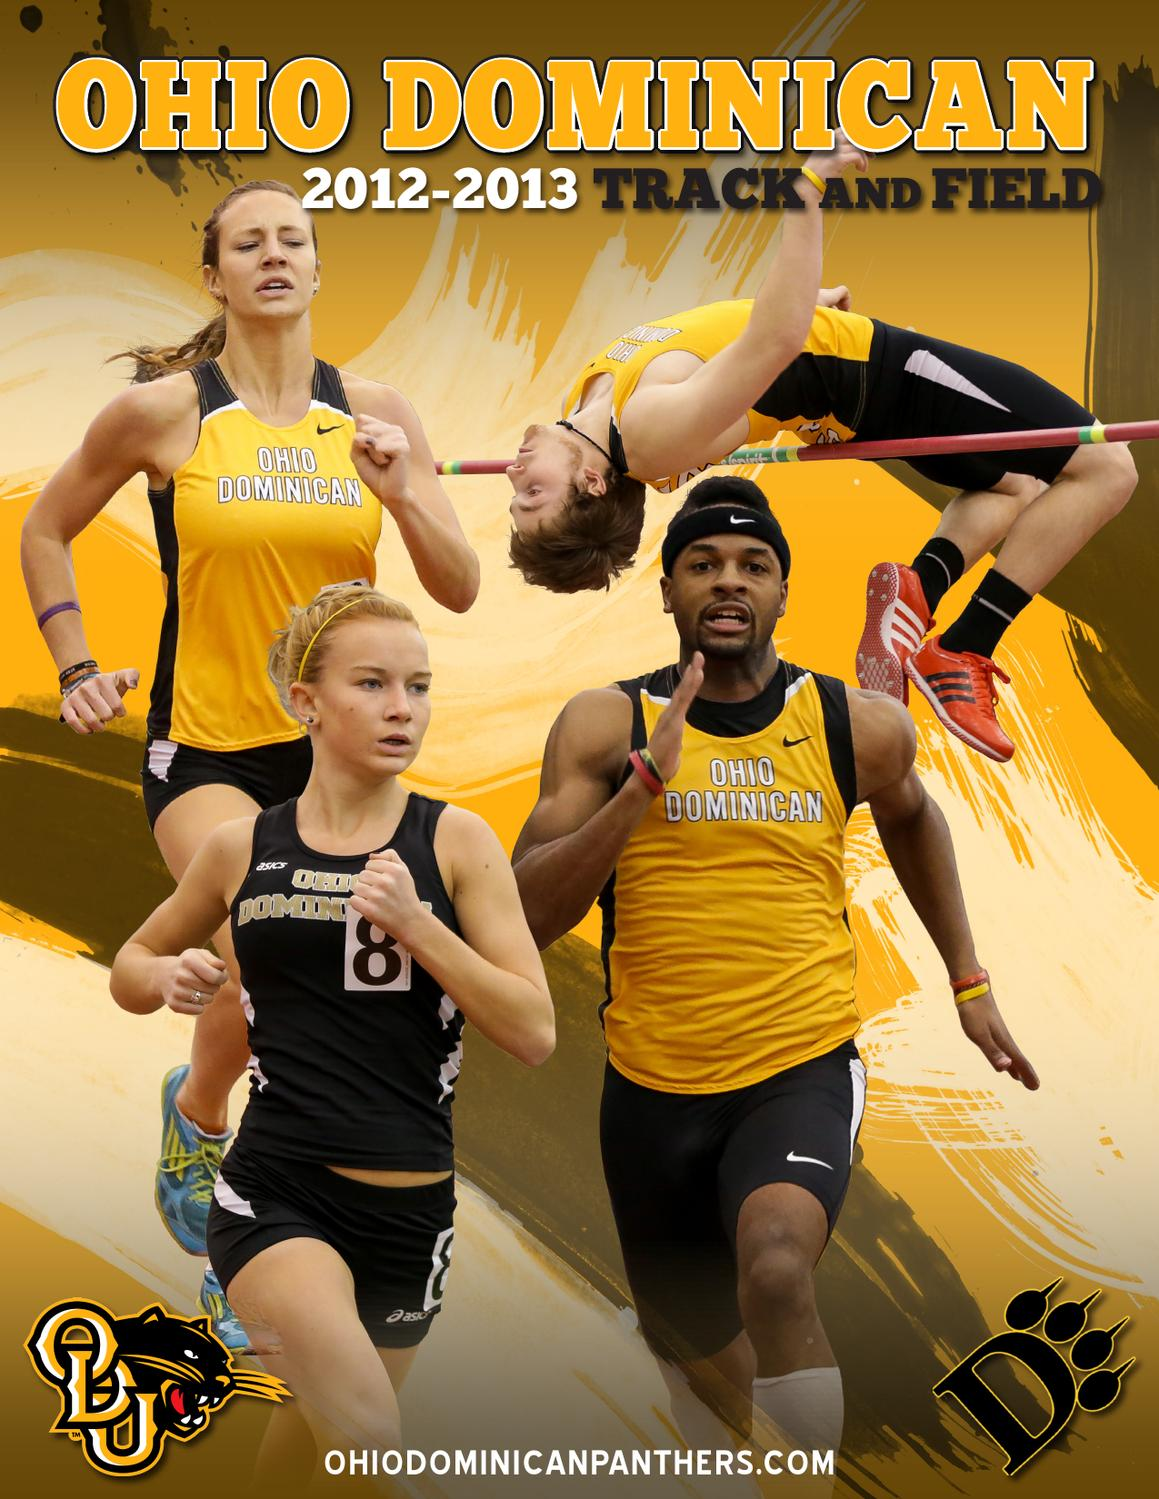 2013 Ohio Dominican Track & Field and Cross Country